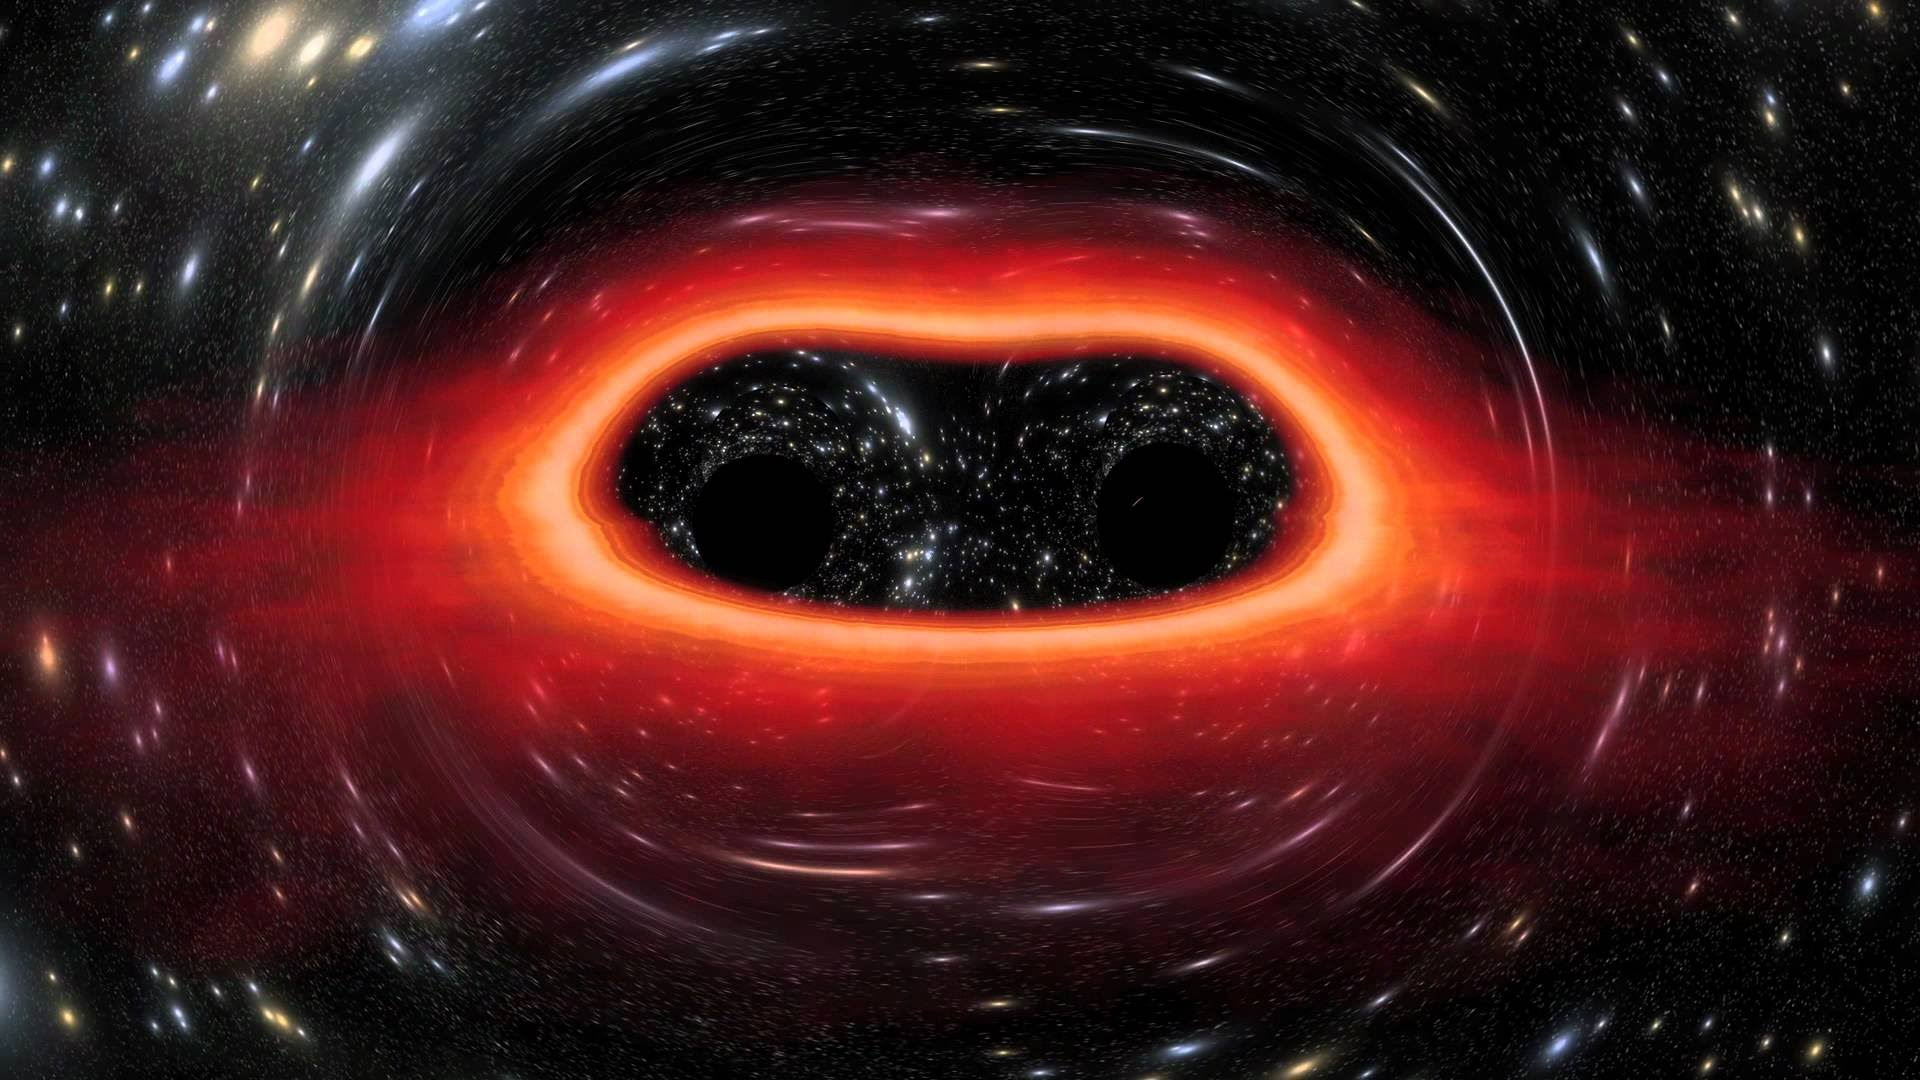 The biggest black hole is Monster Black Hole